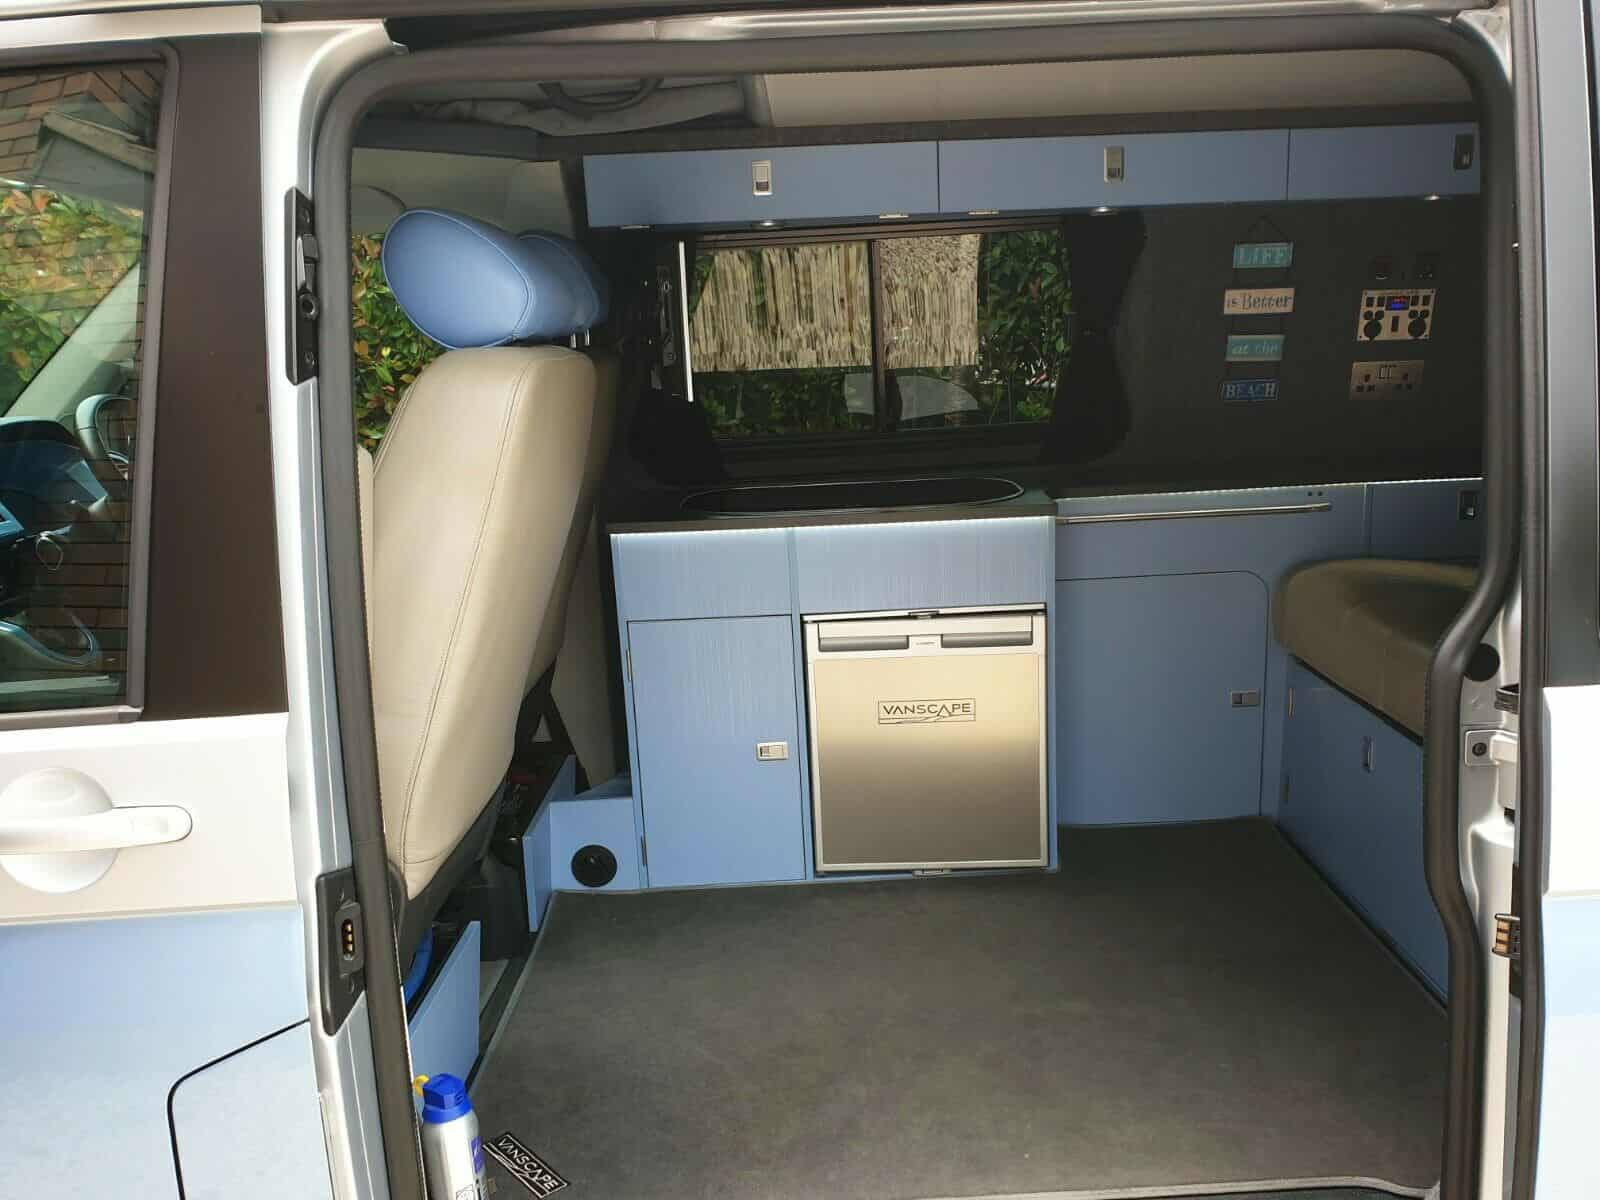 reimo webasto weaco solar 12v campervan camping fridge van interior custom design custom build custom electrics